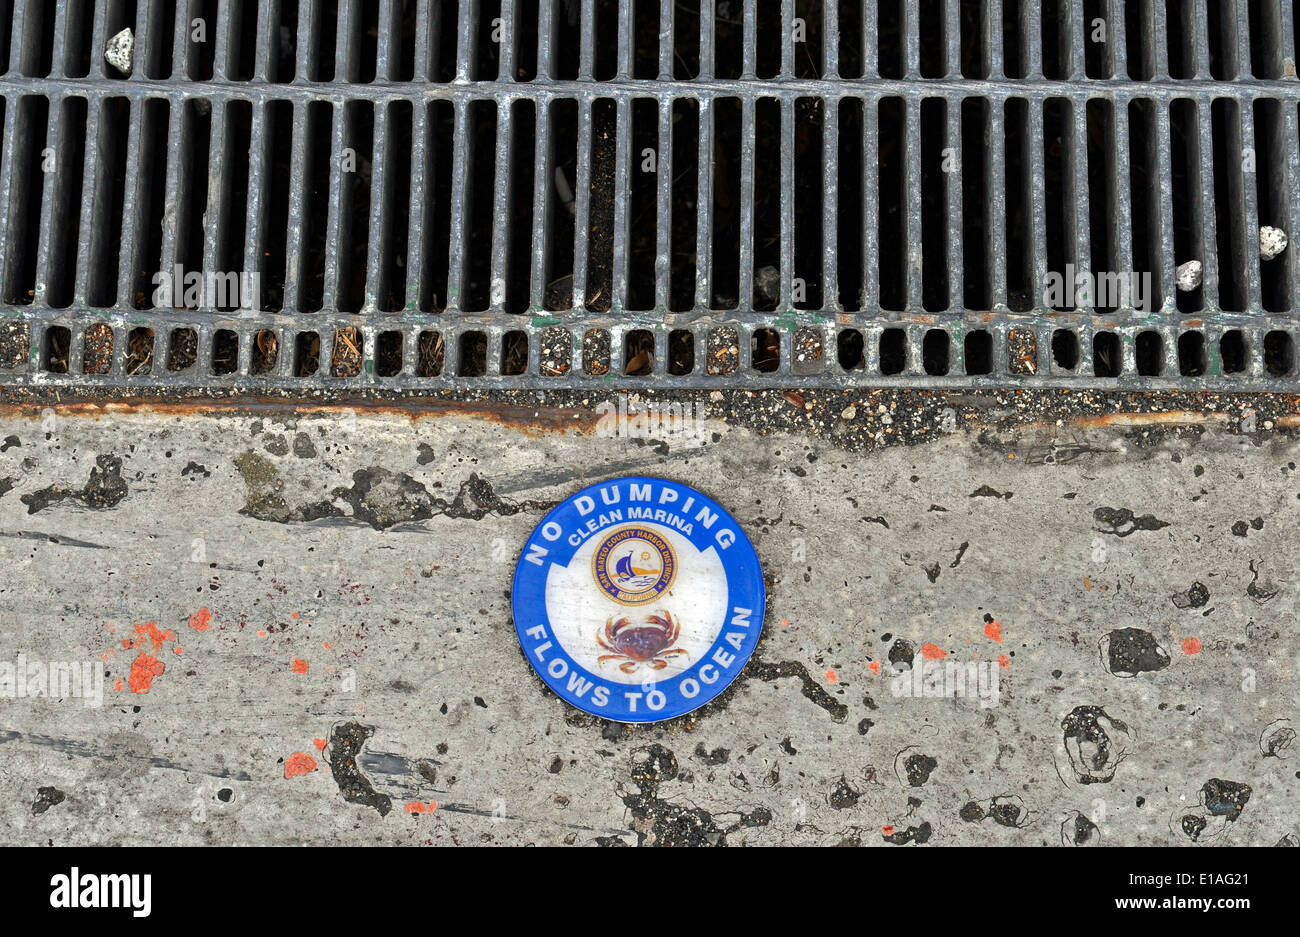 Storm drain 'No Dumping Flows to Ocean' sign - Stock Image